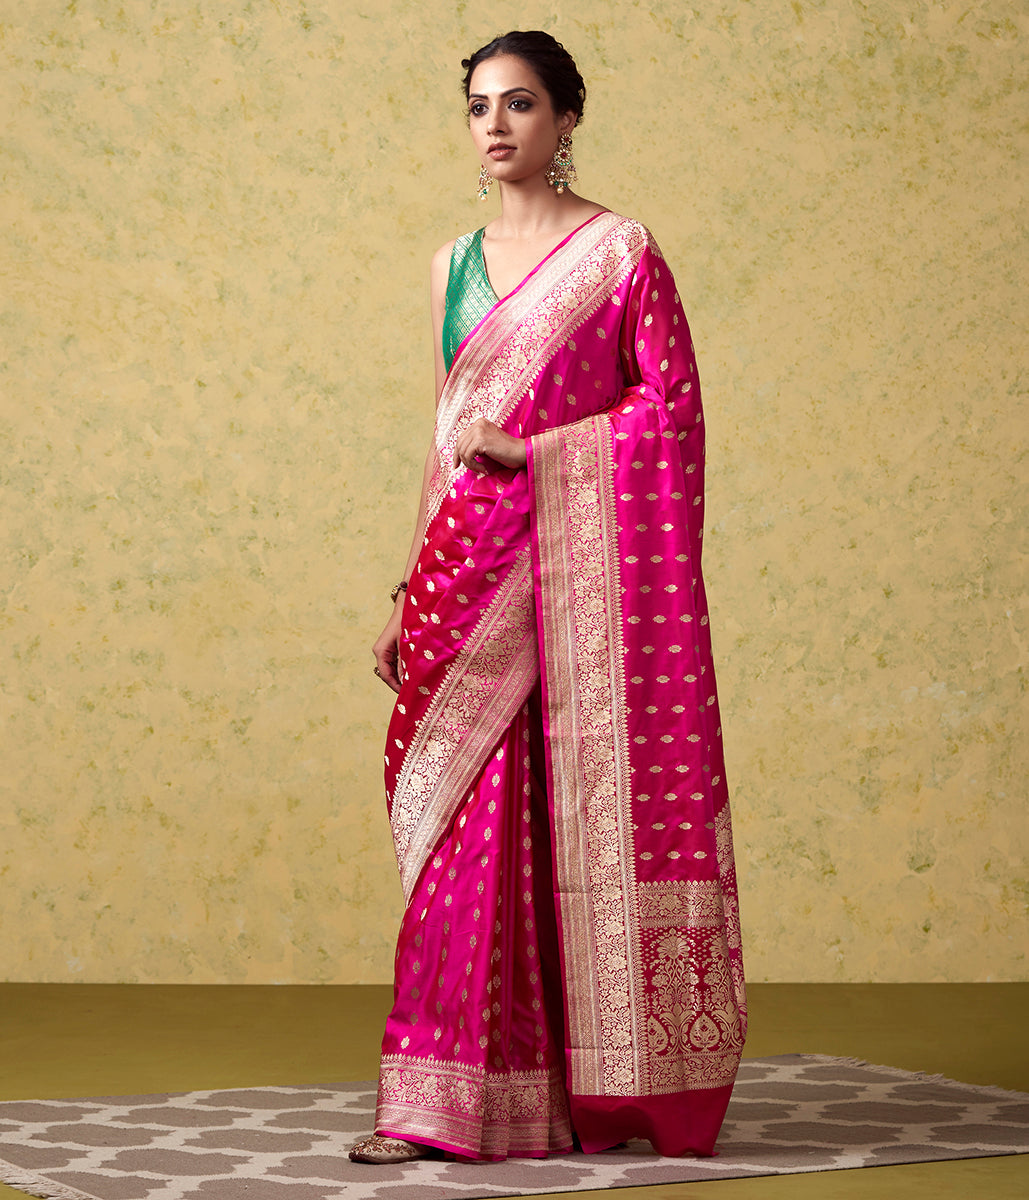 Handwoven Pink Pure Satin Saree with Booti and Floral Border